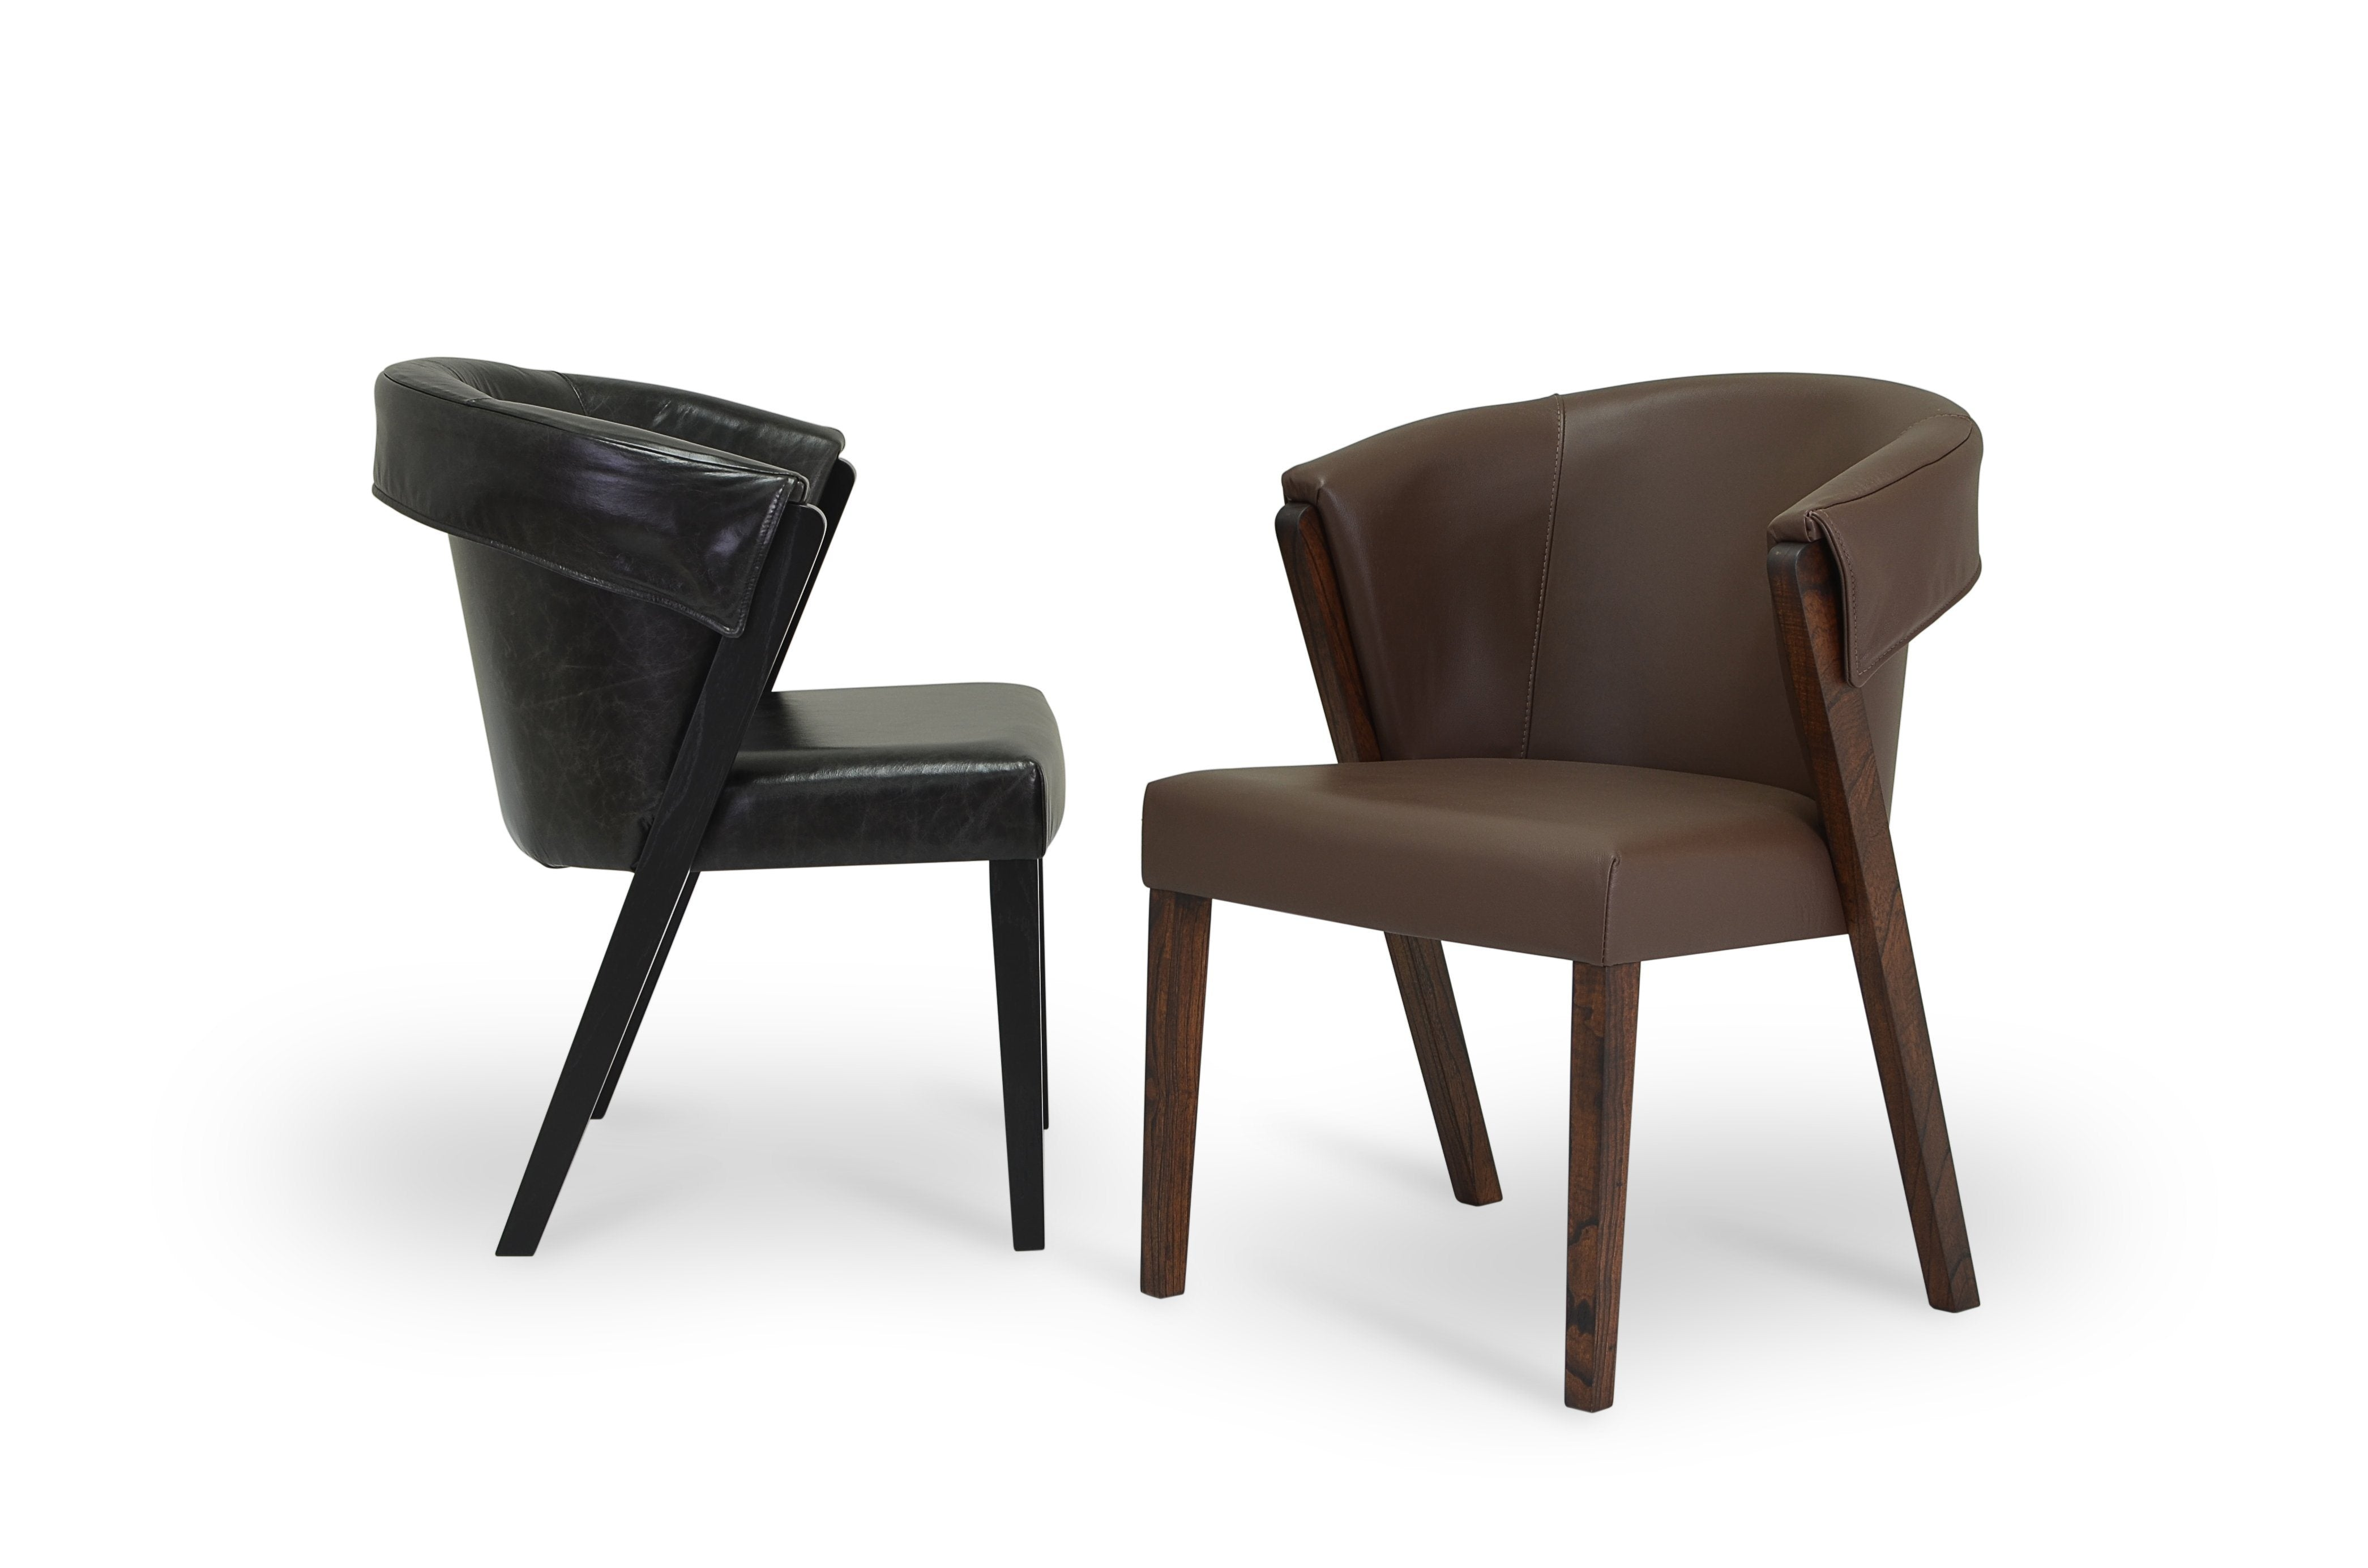 Blanca dining/side chair by Rejane Carvalho Leite - Kelly Christian Designs